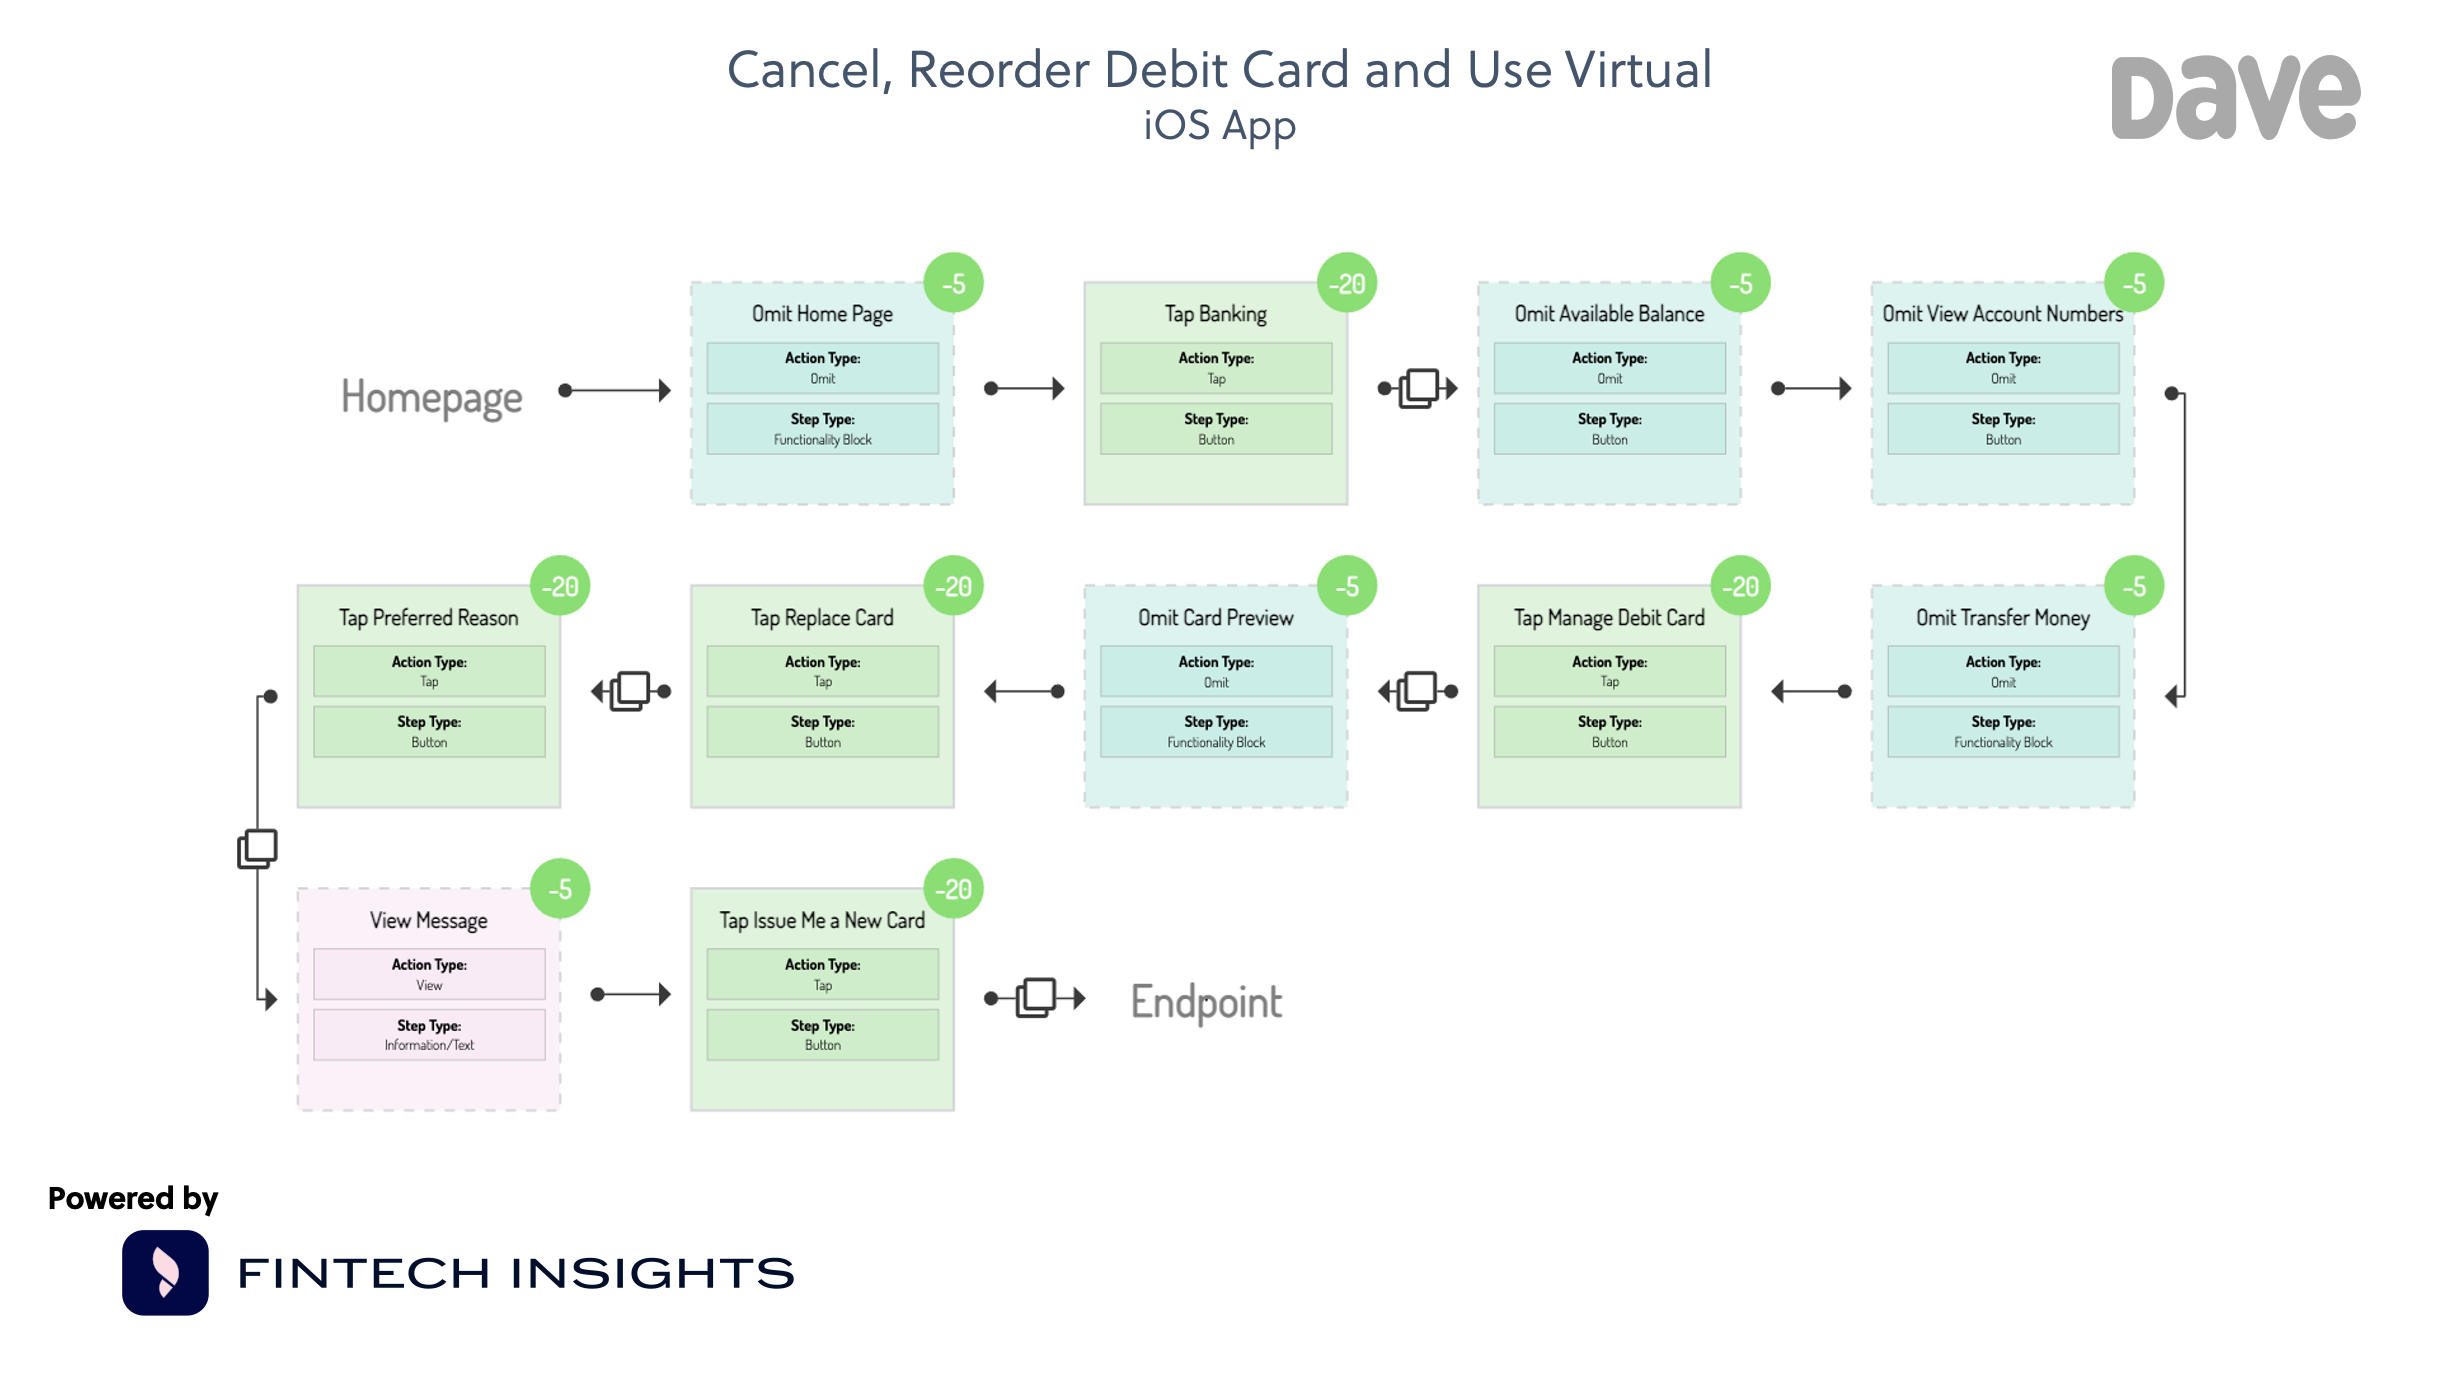 Dave Cancel, Reorder Card and Use Virtual